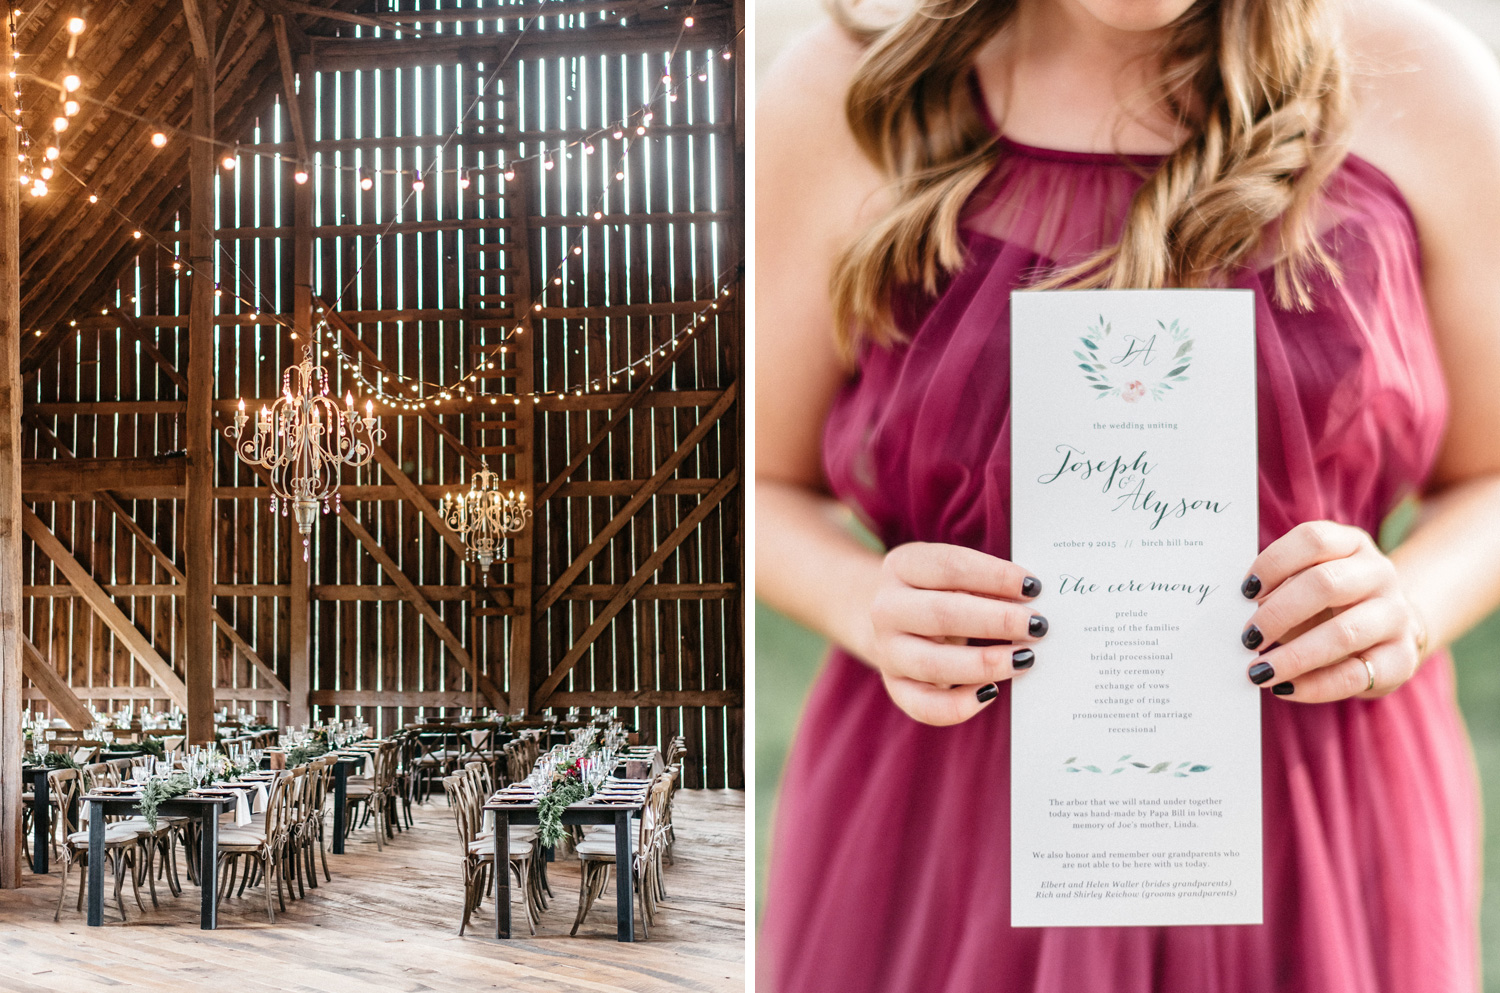 Fall wedding details at Birch Hill Barn captured by Geneoh Photography